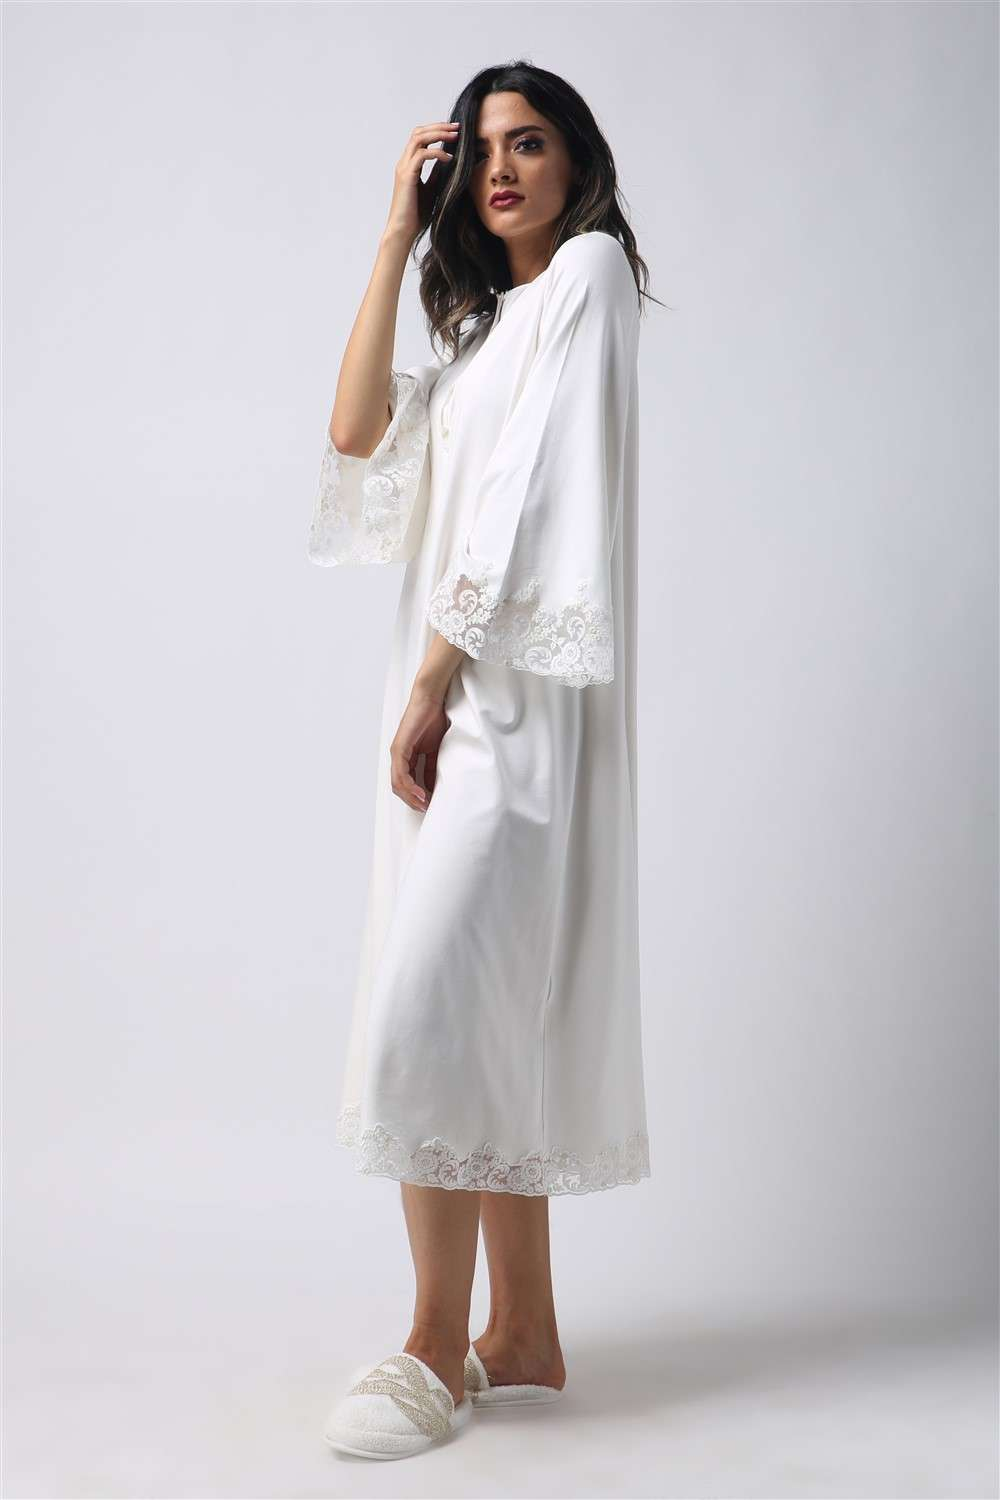 Cotton Nightgown - Goldish Sunkissed